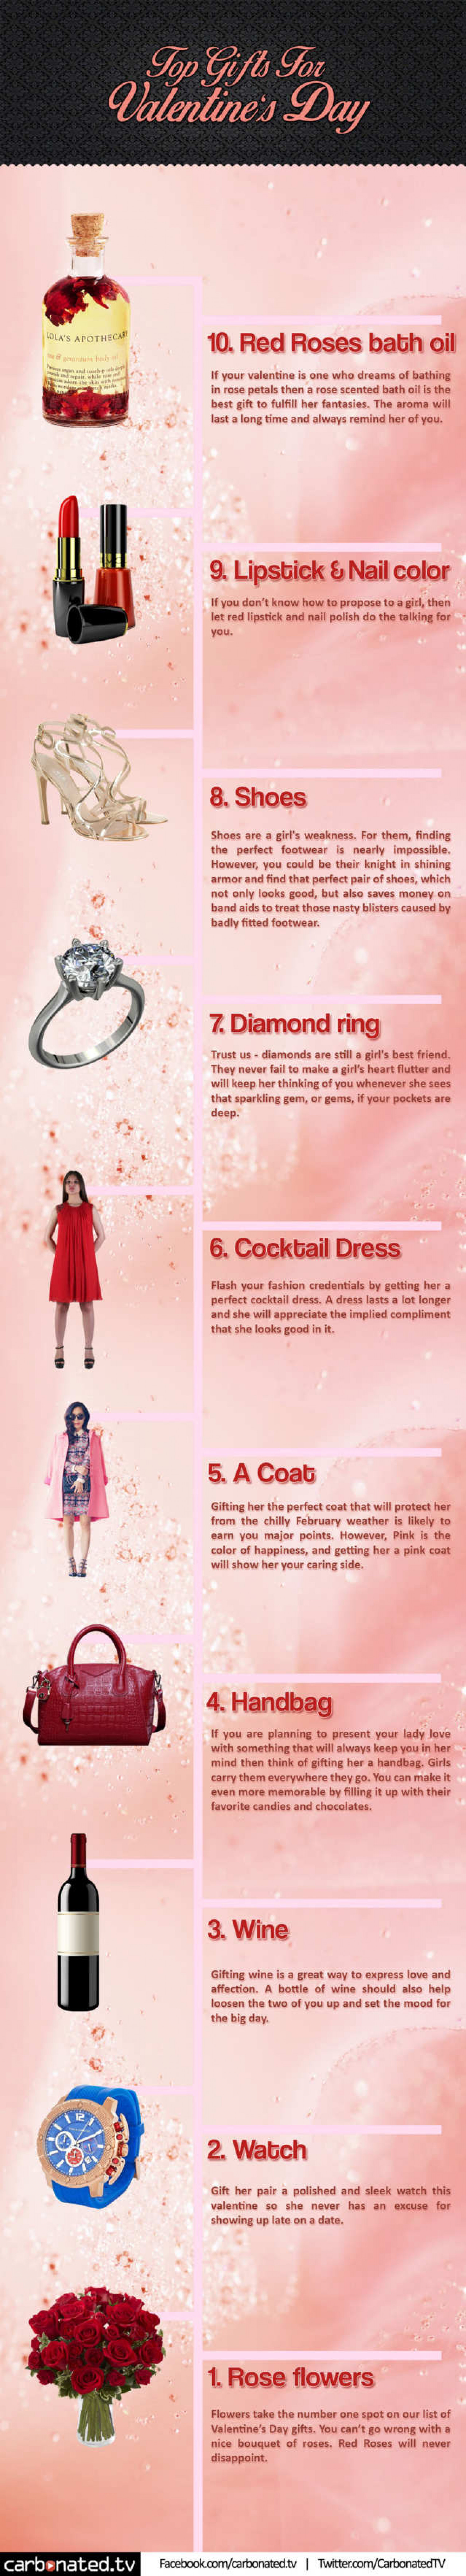 Top Gifts for Valentine's Day  Infographic